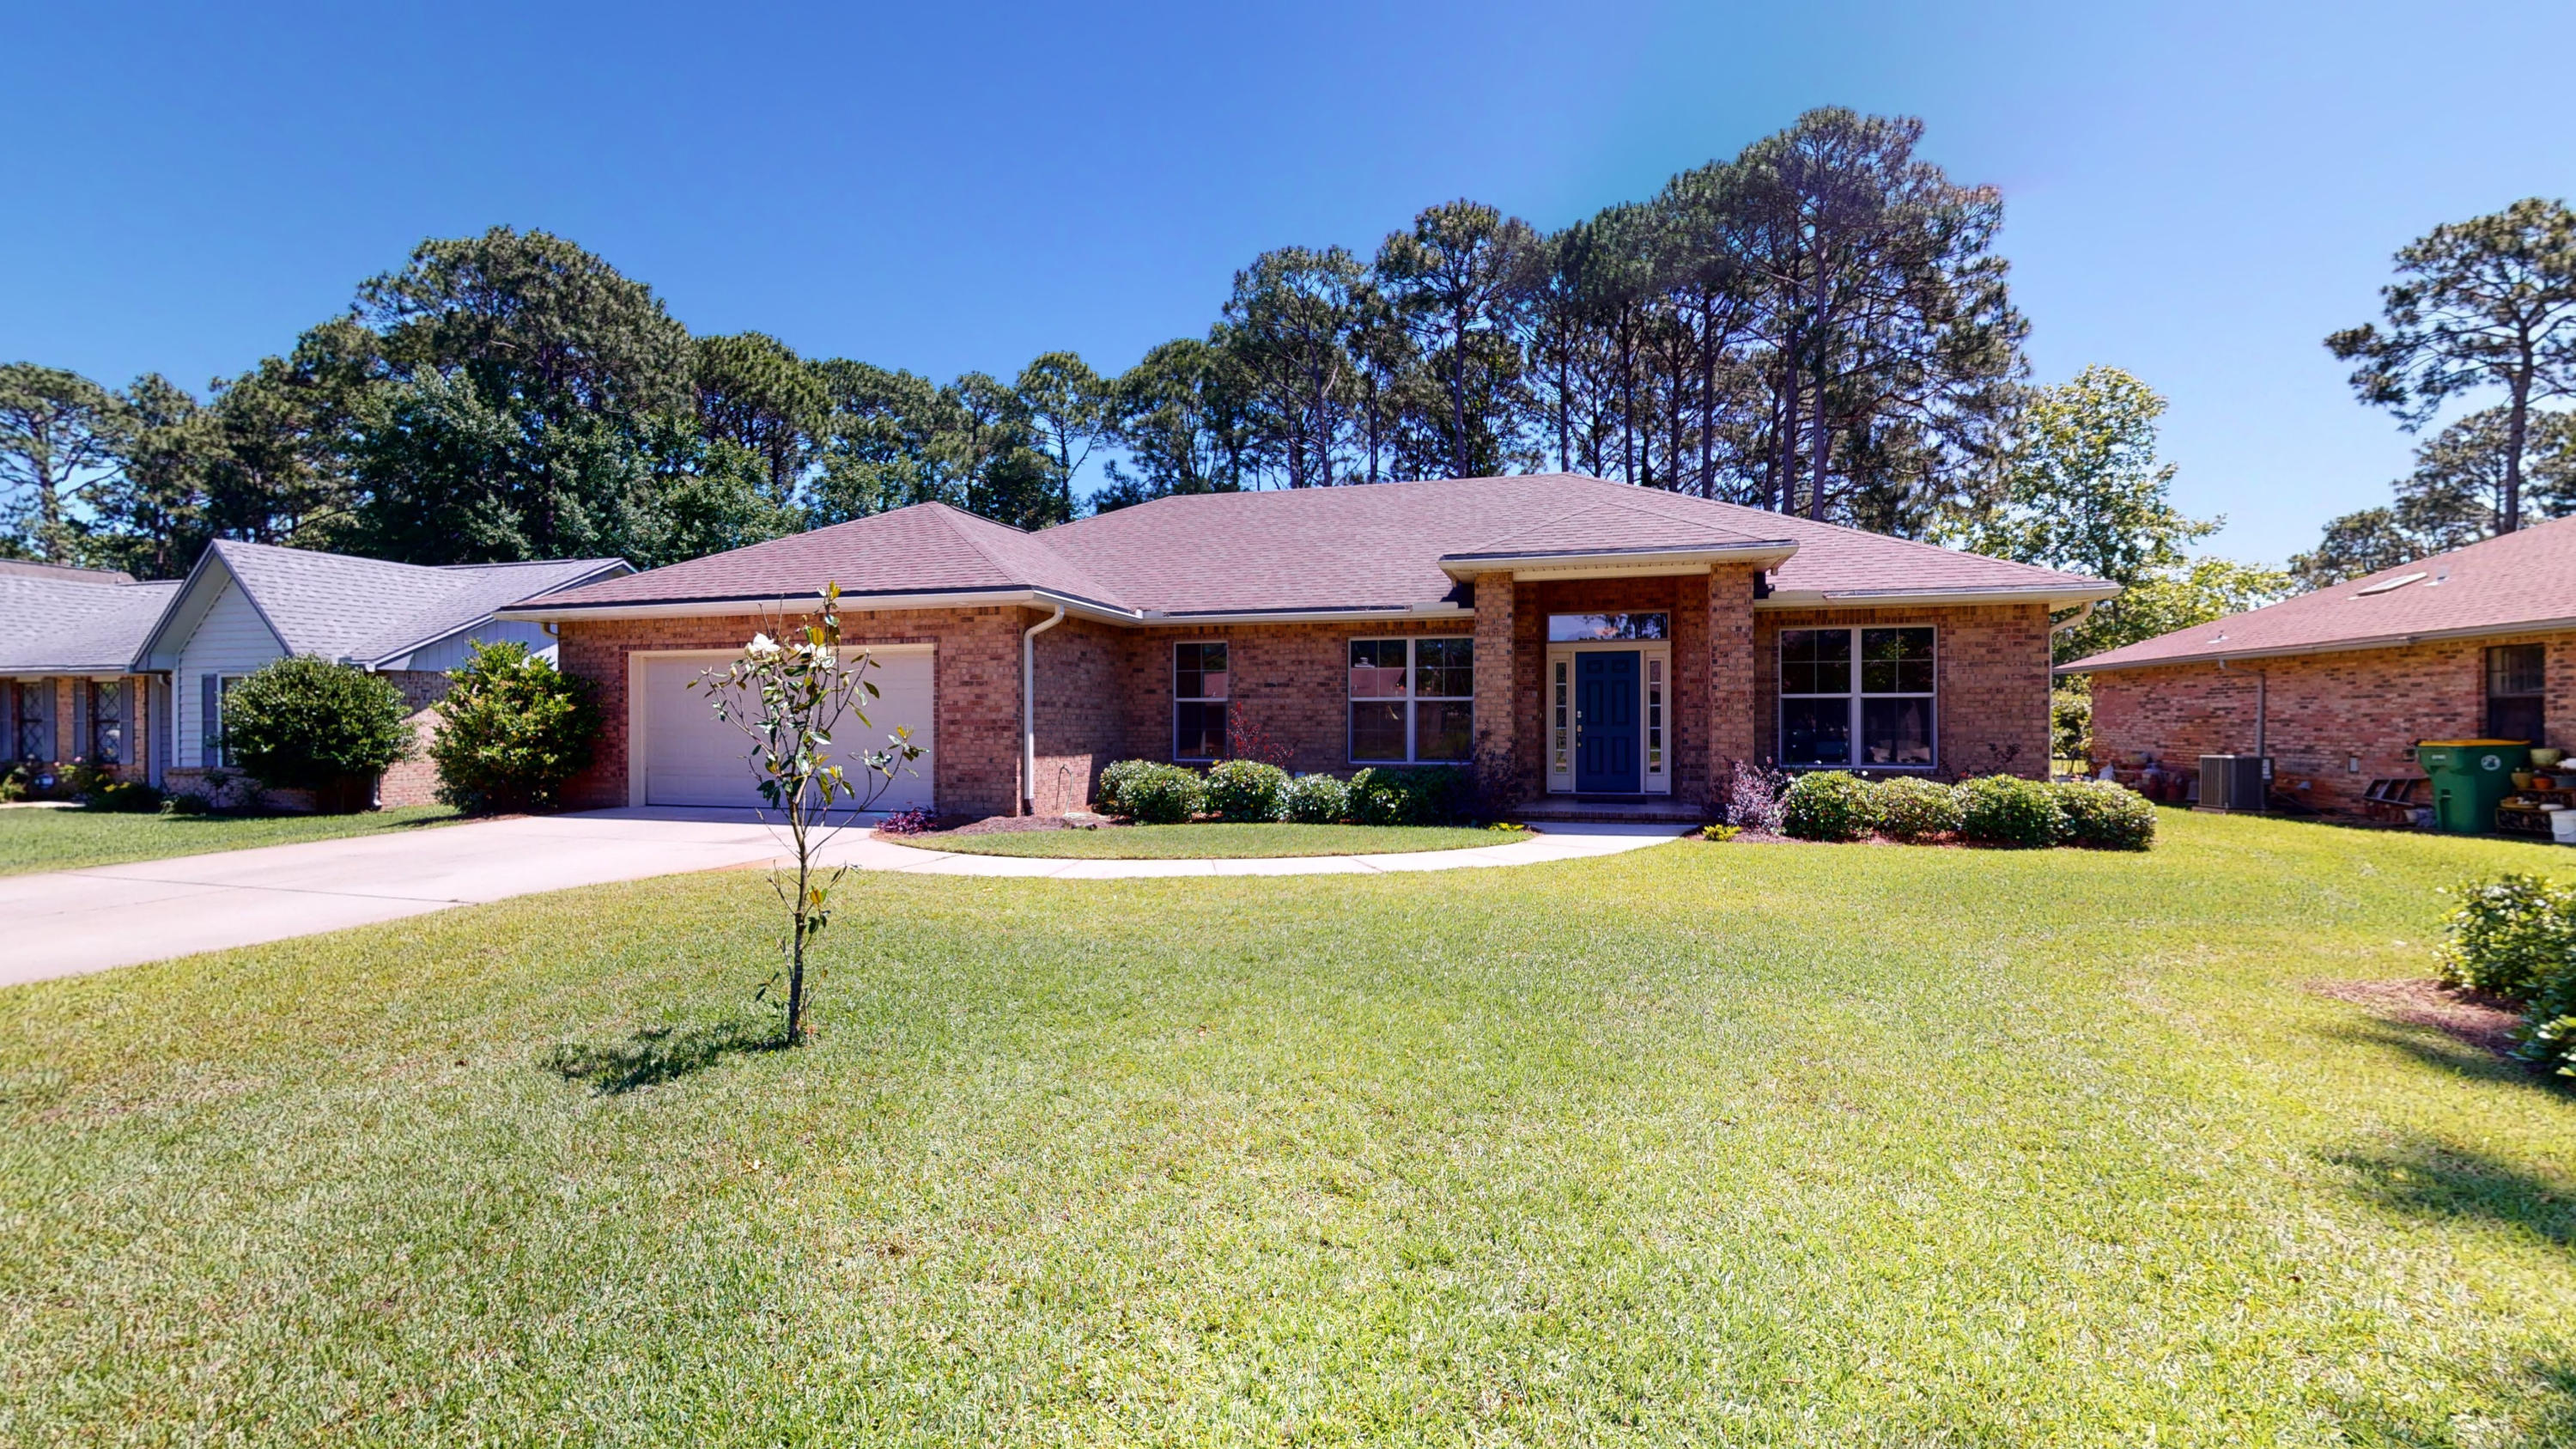 1165 W Troon Drive, Niceville in Okaloosa County, FL 32578 Home for Sale